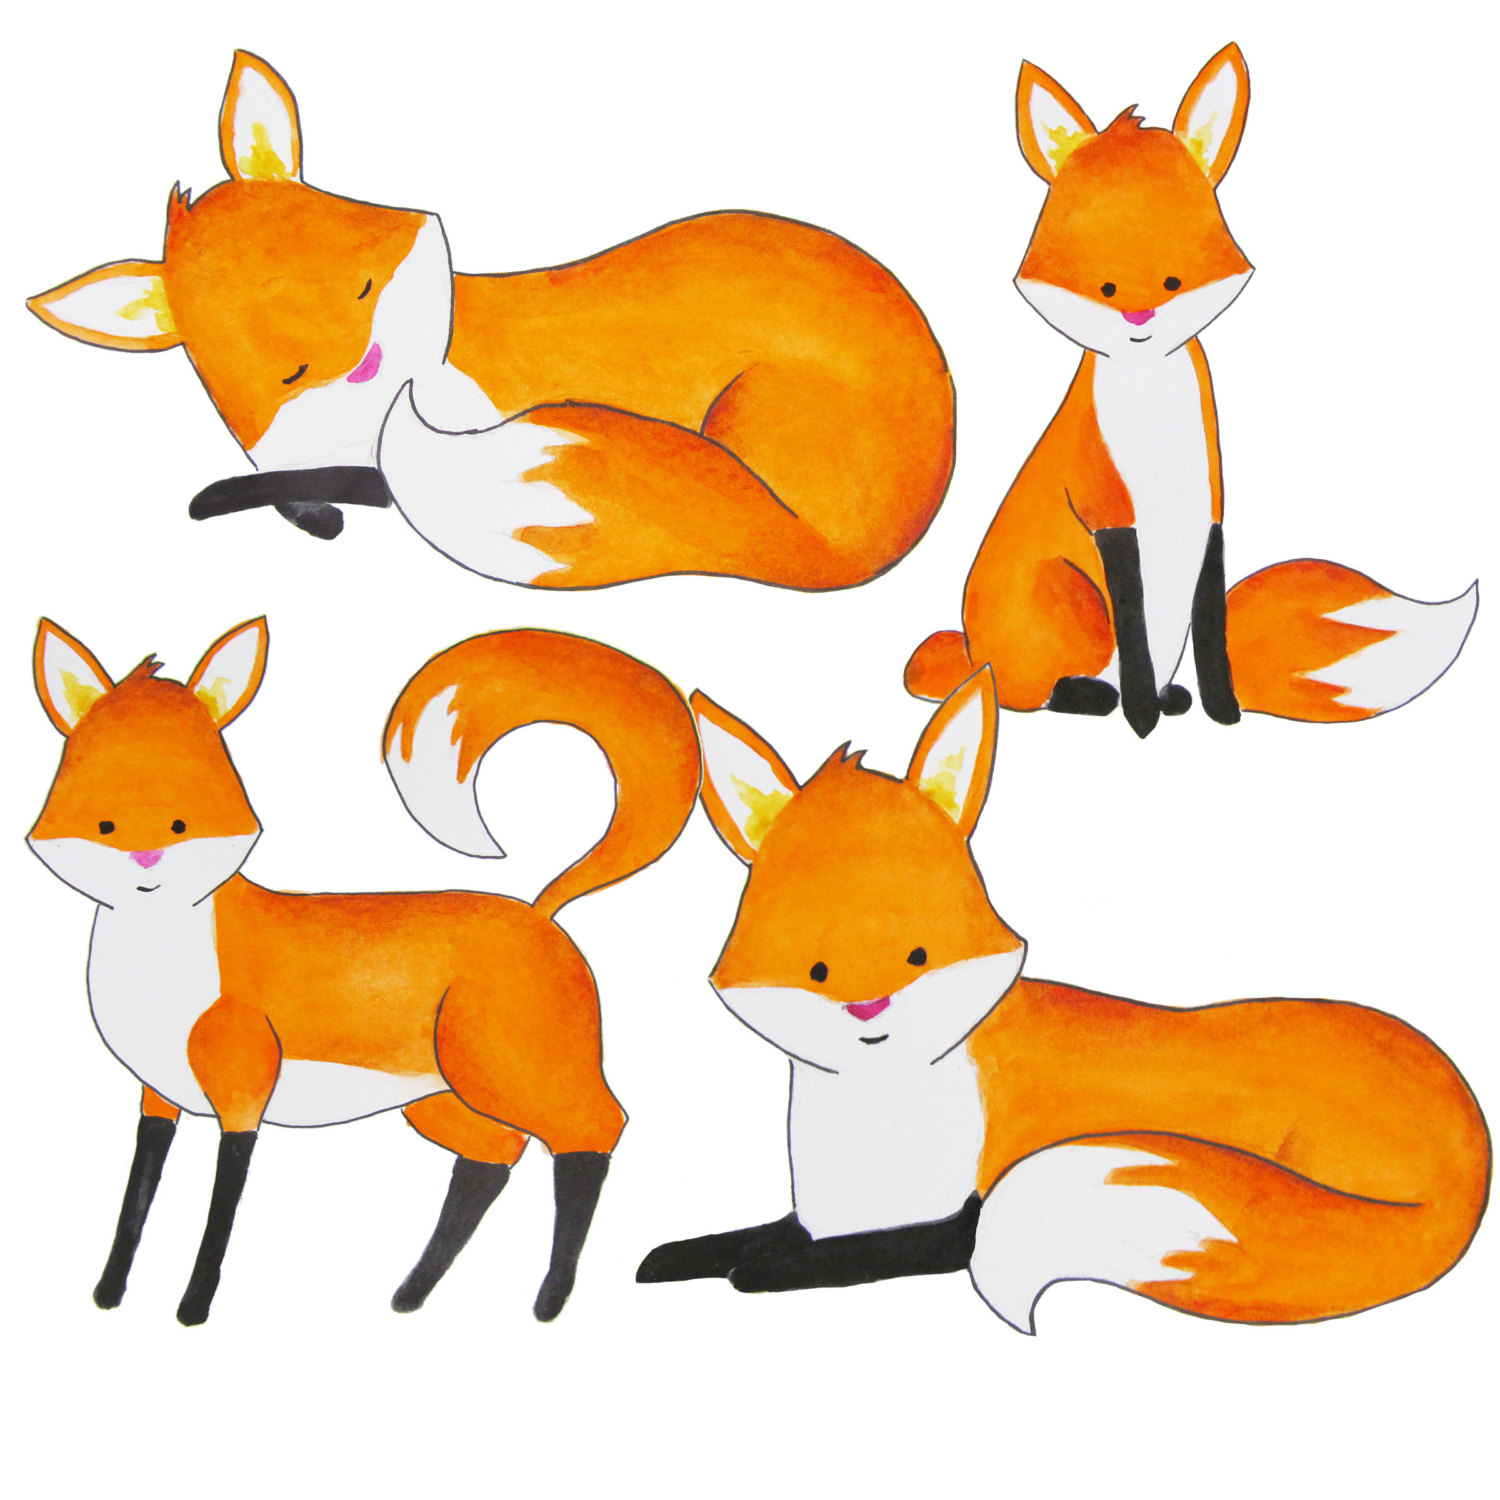 1500x1500 Watercolor Fox Clipart, Foxes Clipart, Red Fox Clip Art, Forest